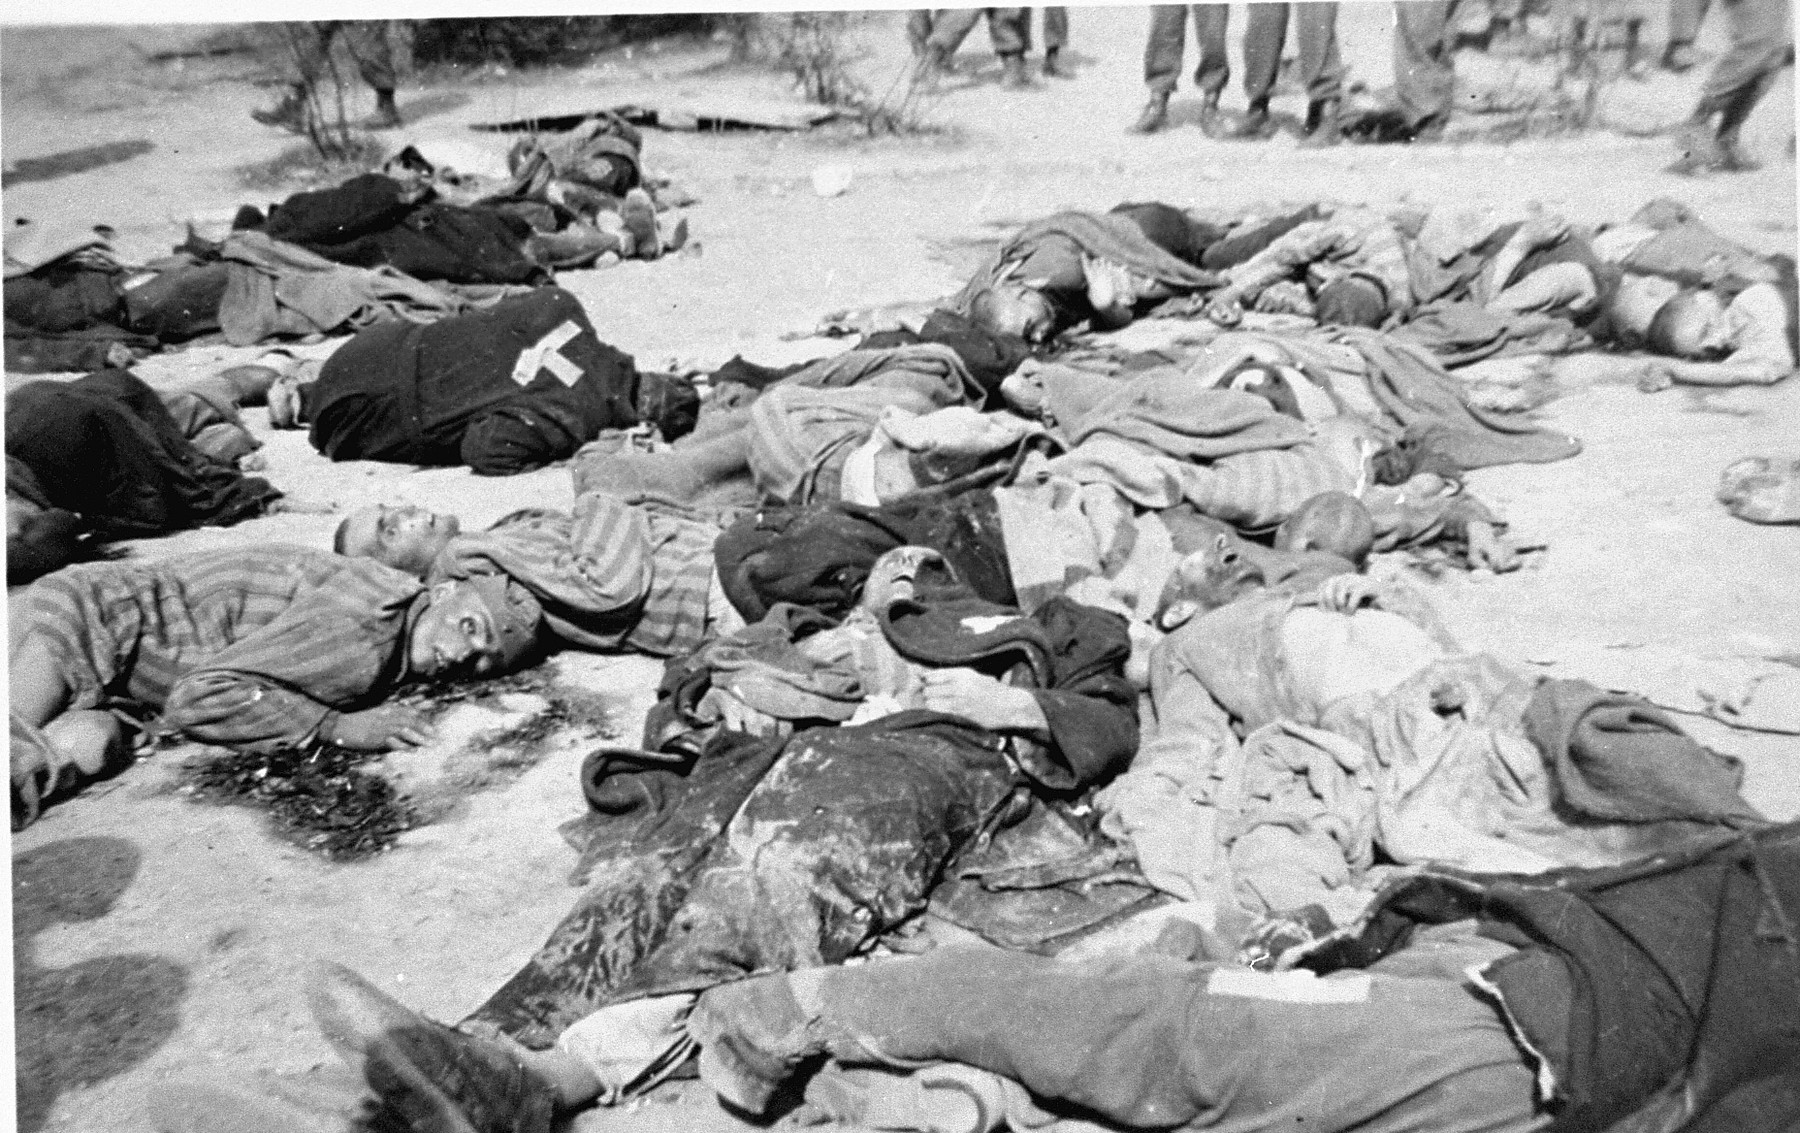 The corpses of prisoners who were machine-gunned by the SS prior to the evacuation of Ohrdruf.